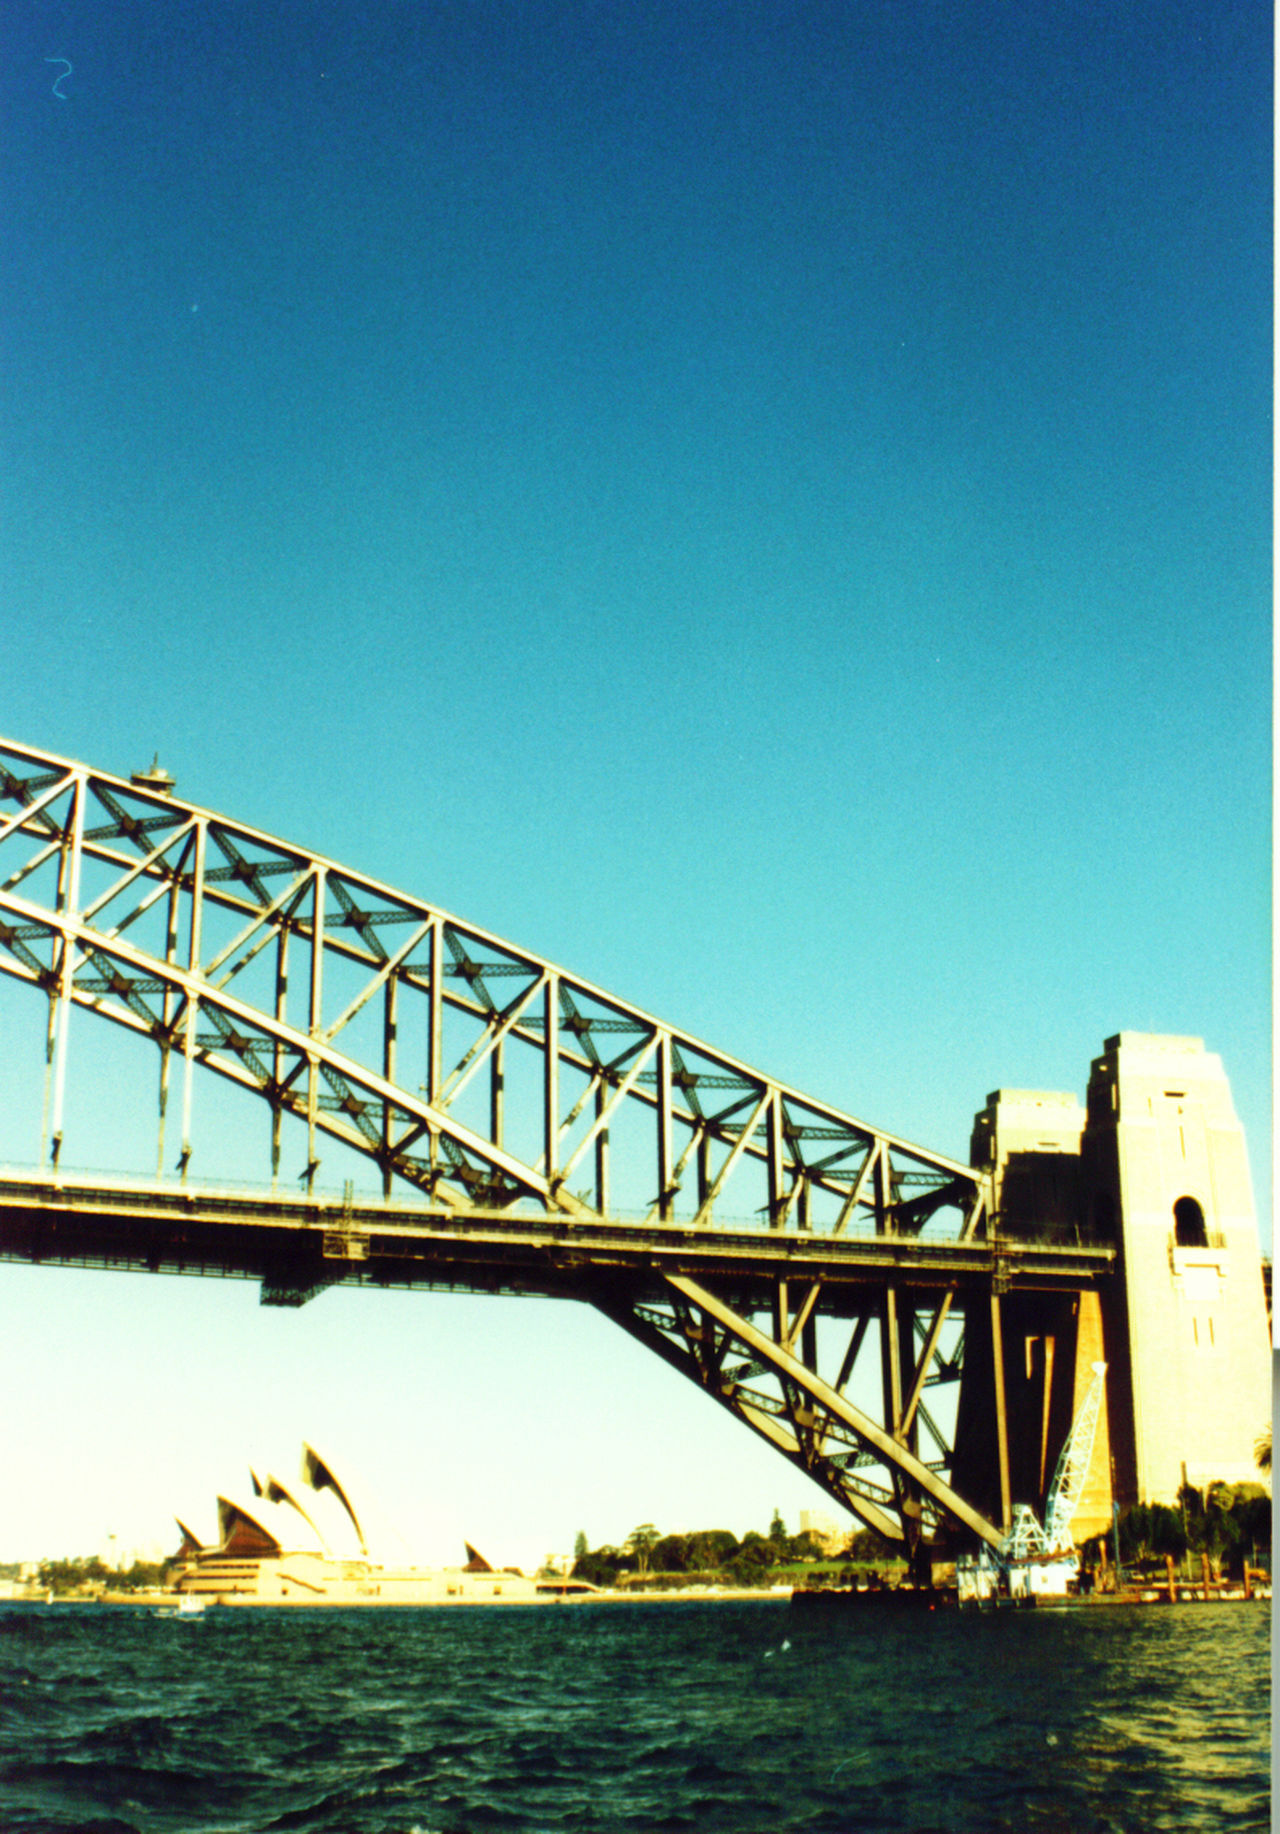 Architecture Australia. Blue Bridge Bridge - Man Made Structure Building. Built Structure Clear Sky Copy Space Day Engineering Holidays. Metal Opera House. Part Of Sea Sydney. Syney Harbour Bridge. Travel Water Waterfront